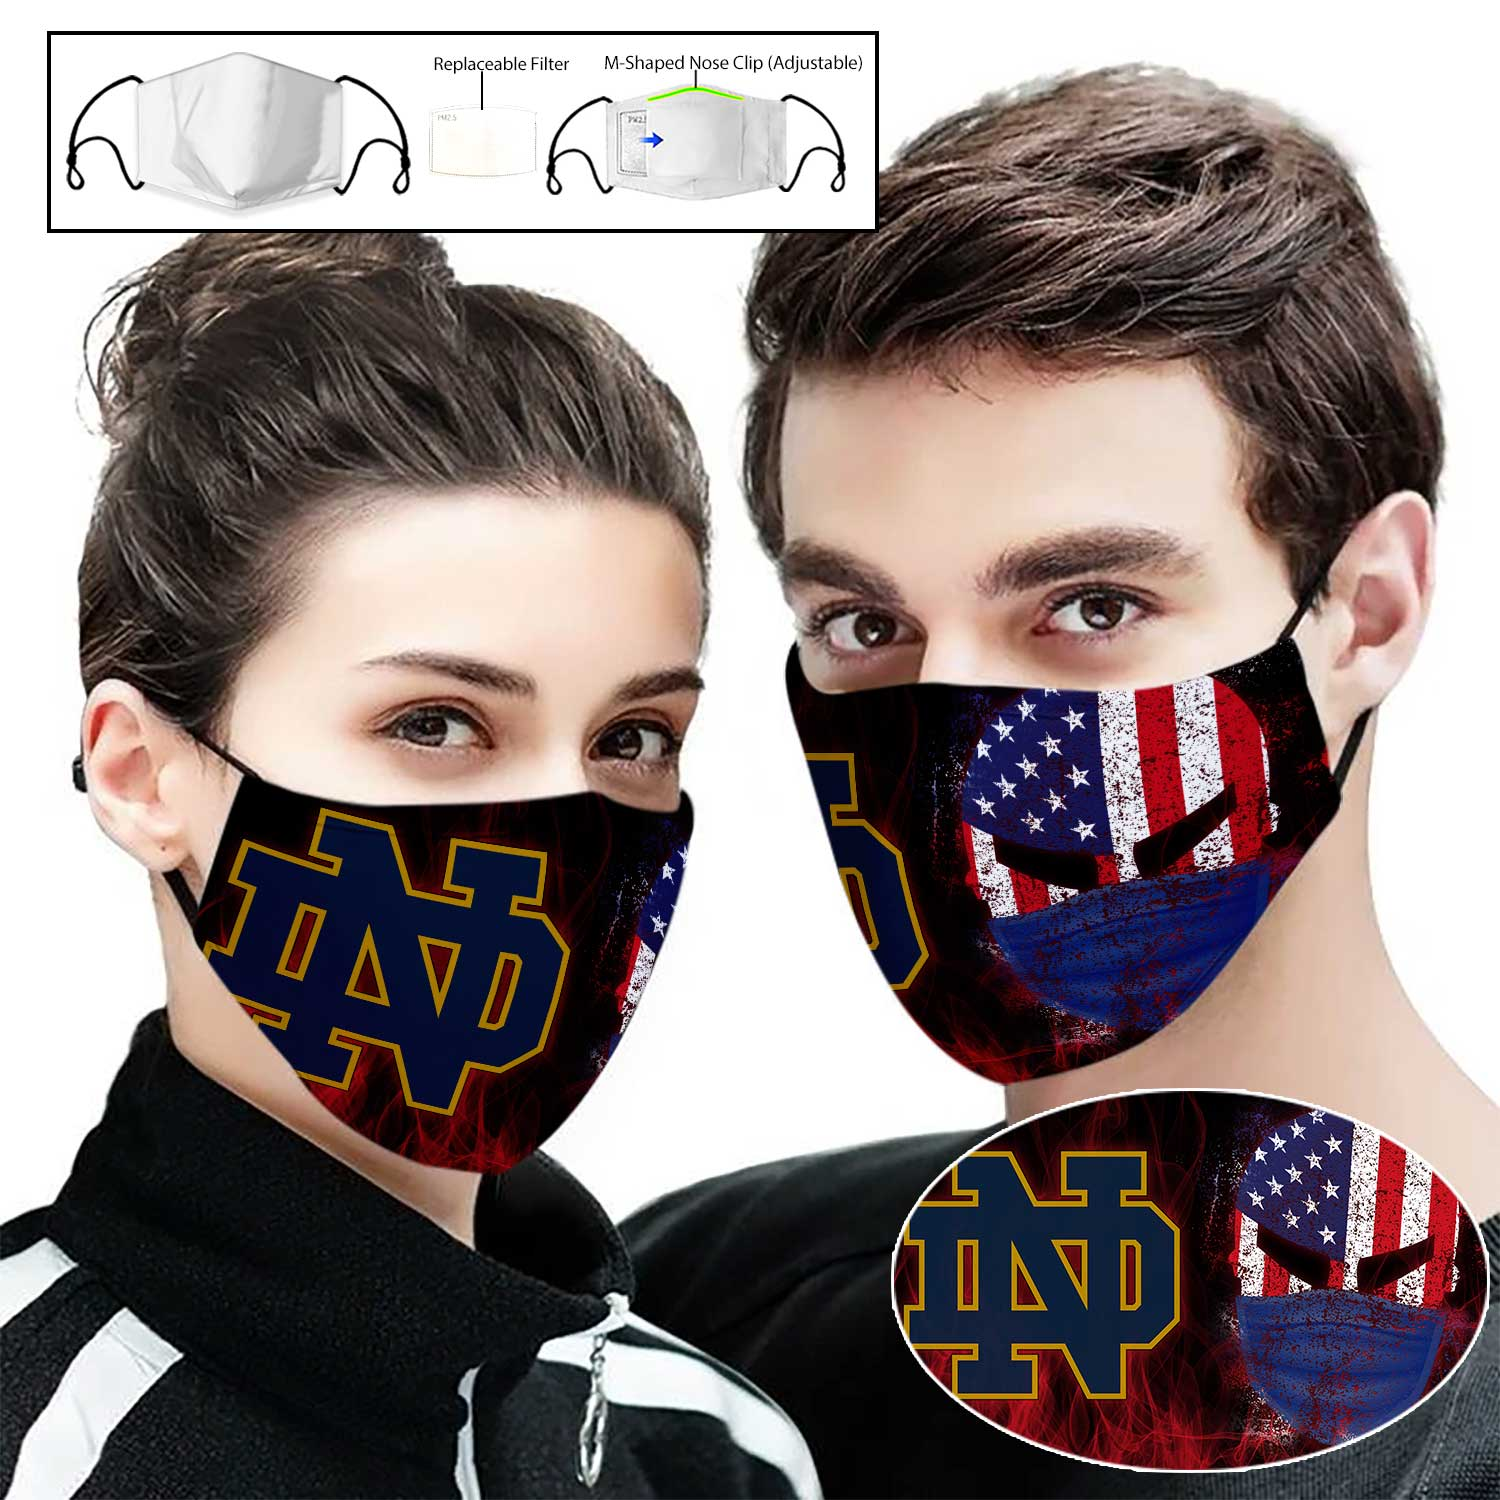 Notre dame fighting irish american warrior full printing face mask 2